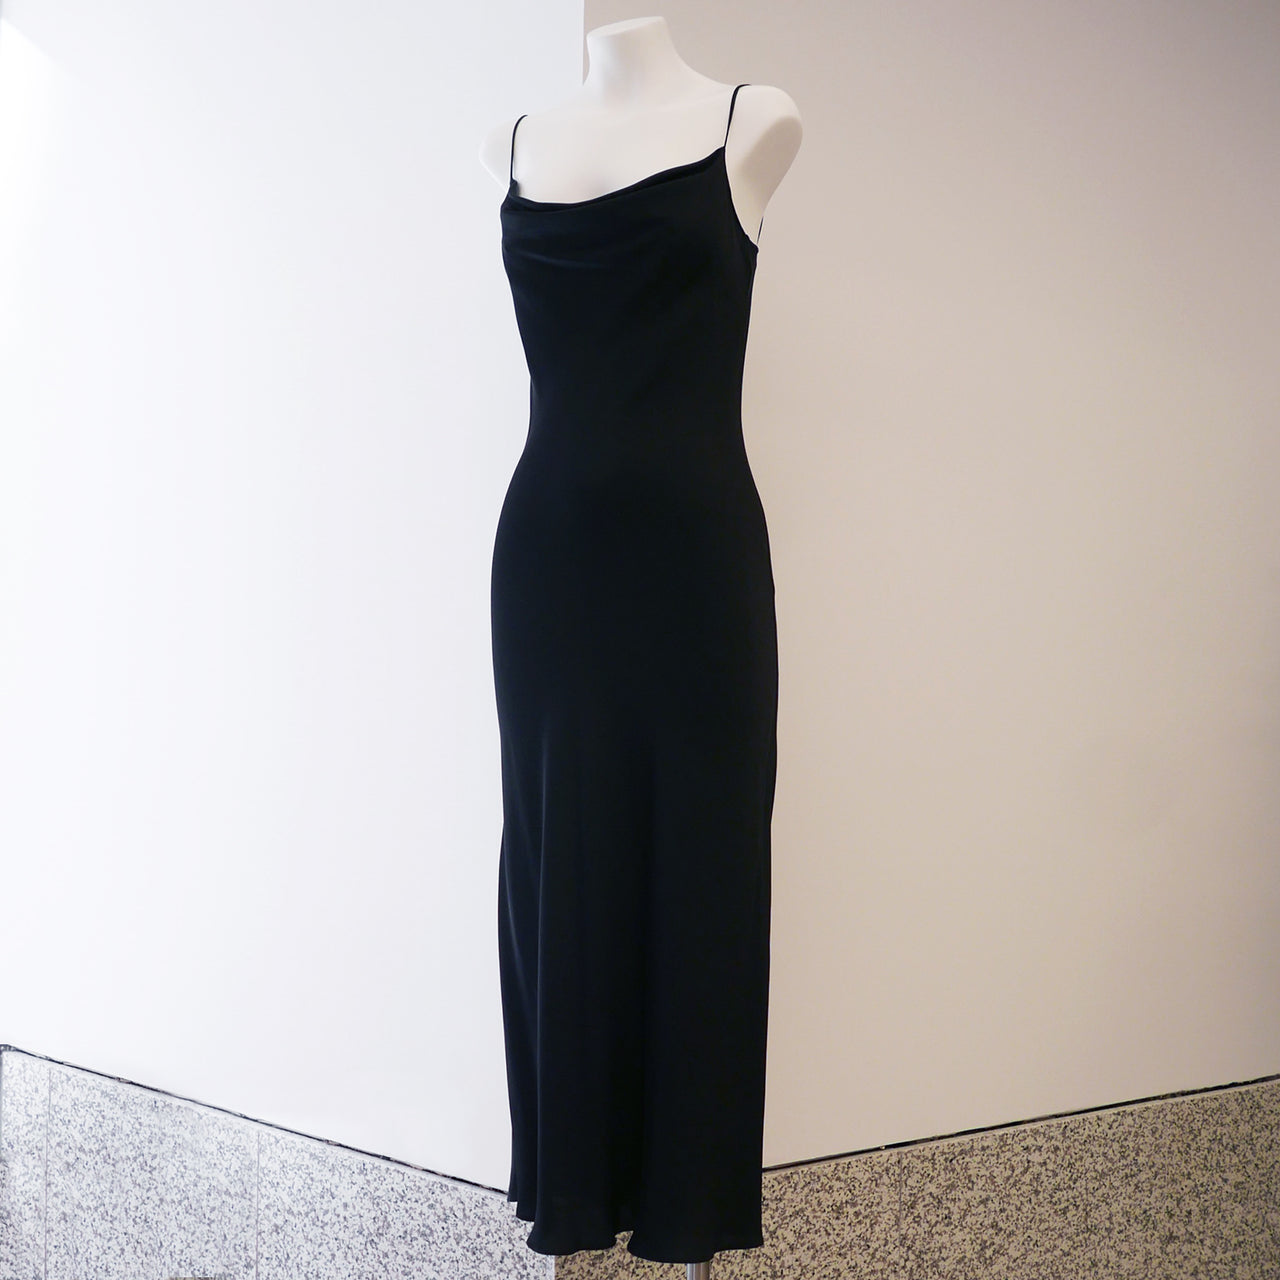 Bias Slip Dress in Black